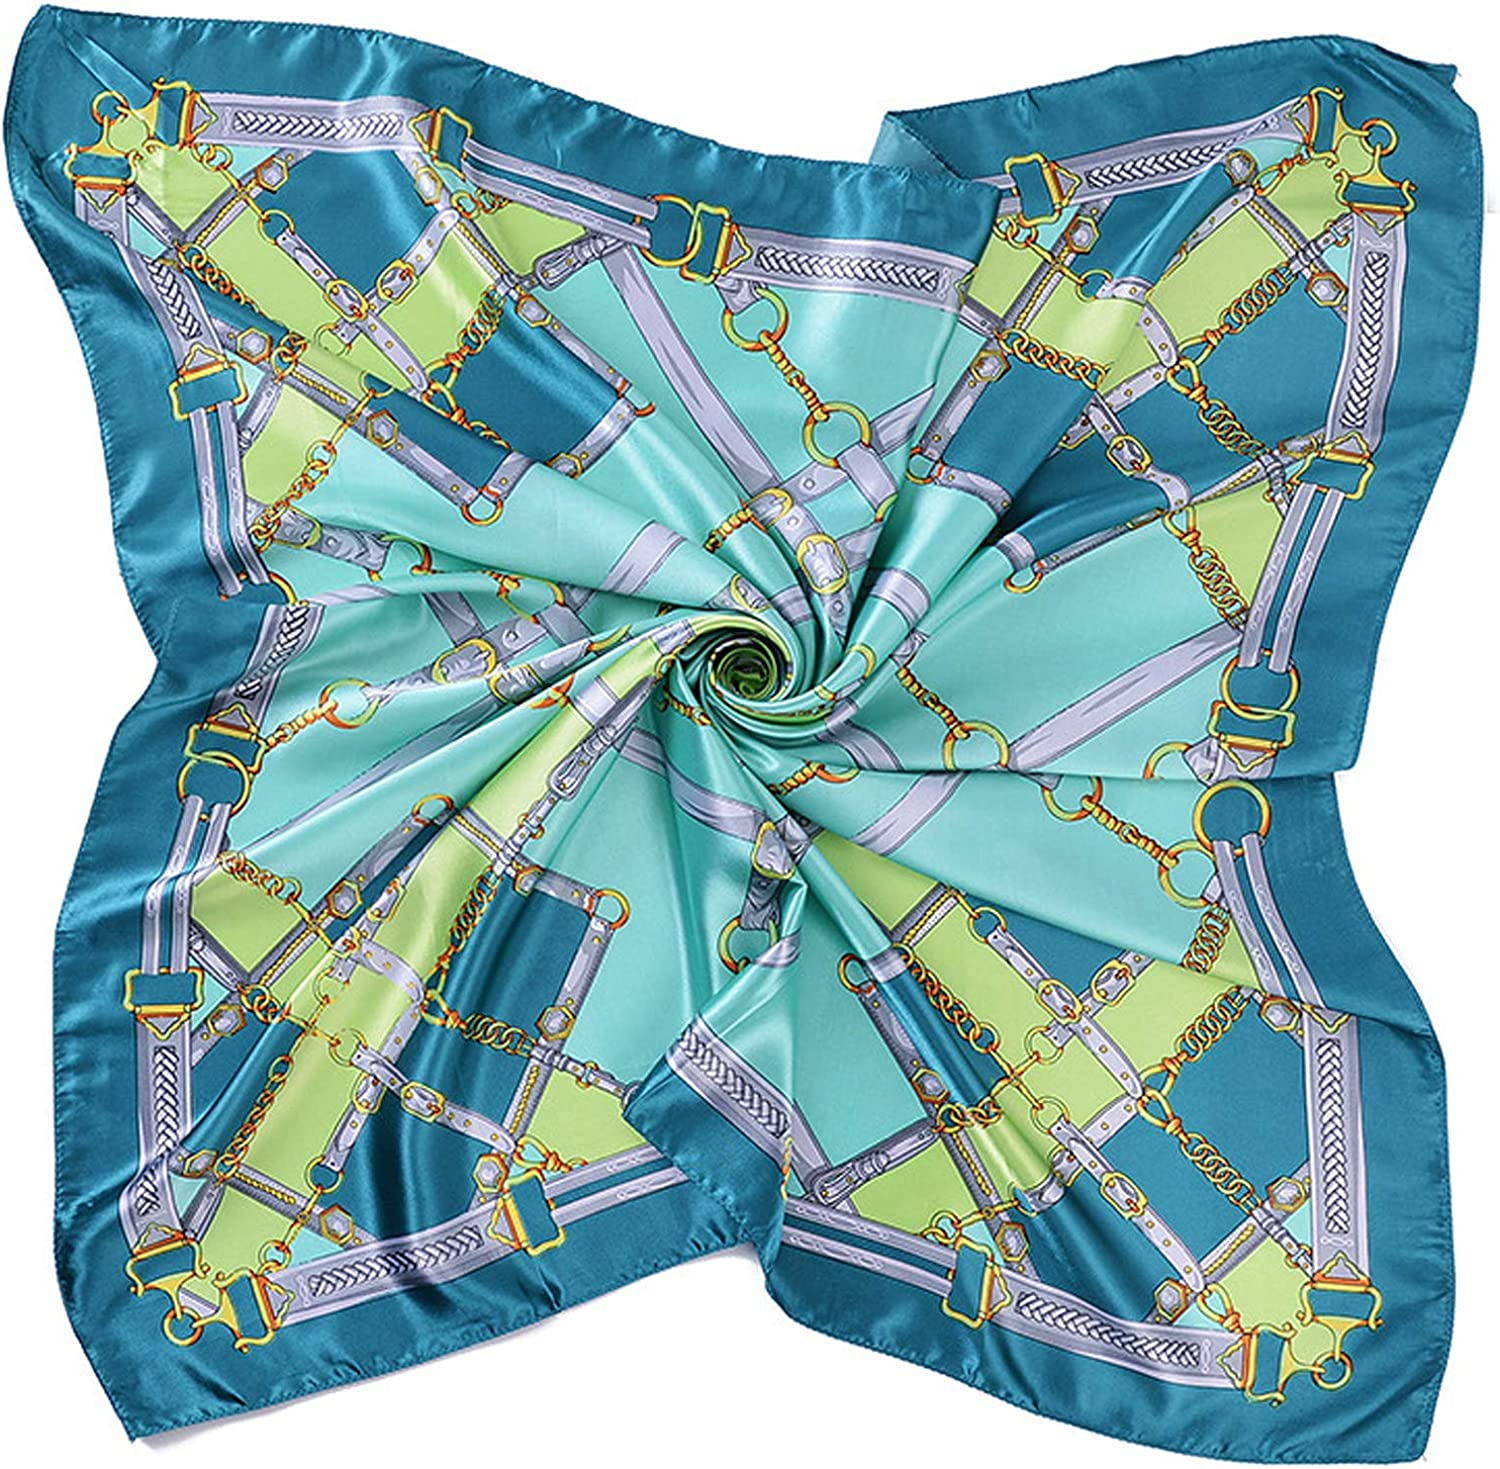 Silk Texture Scarf Fashion Printing Pattern Square Satin Headband Breathable Lightweight Multiapplication for Women